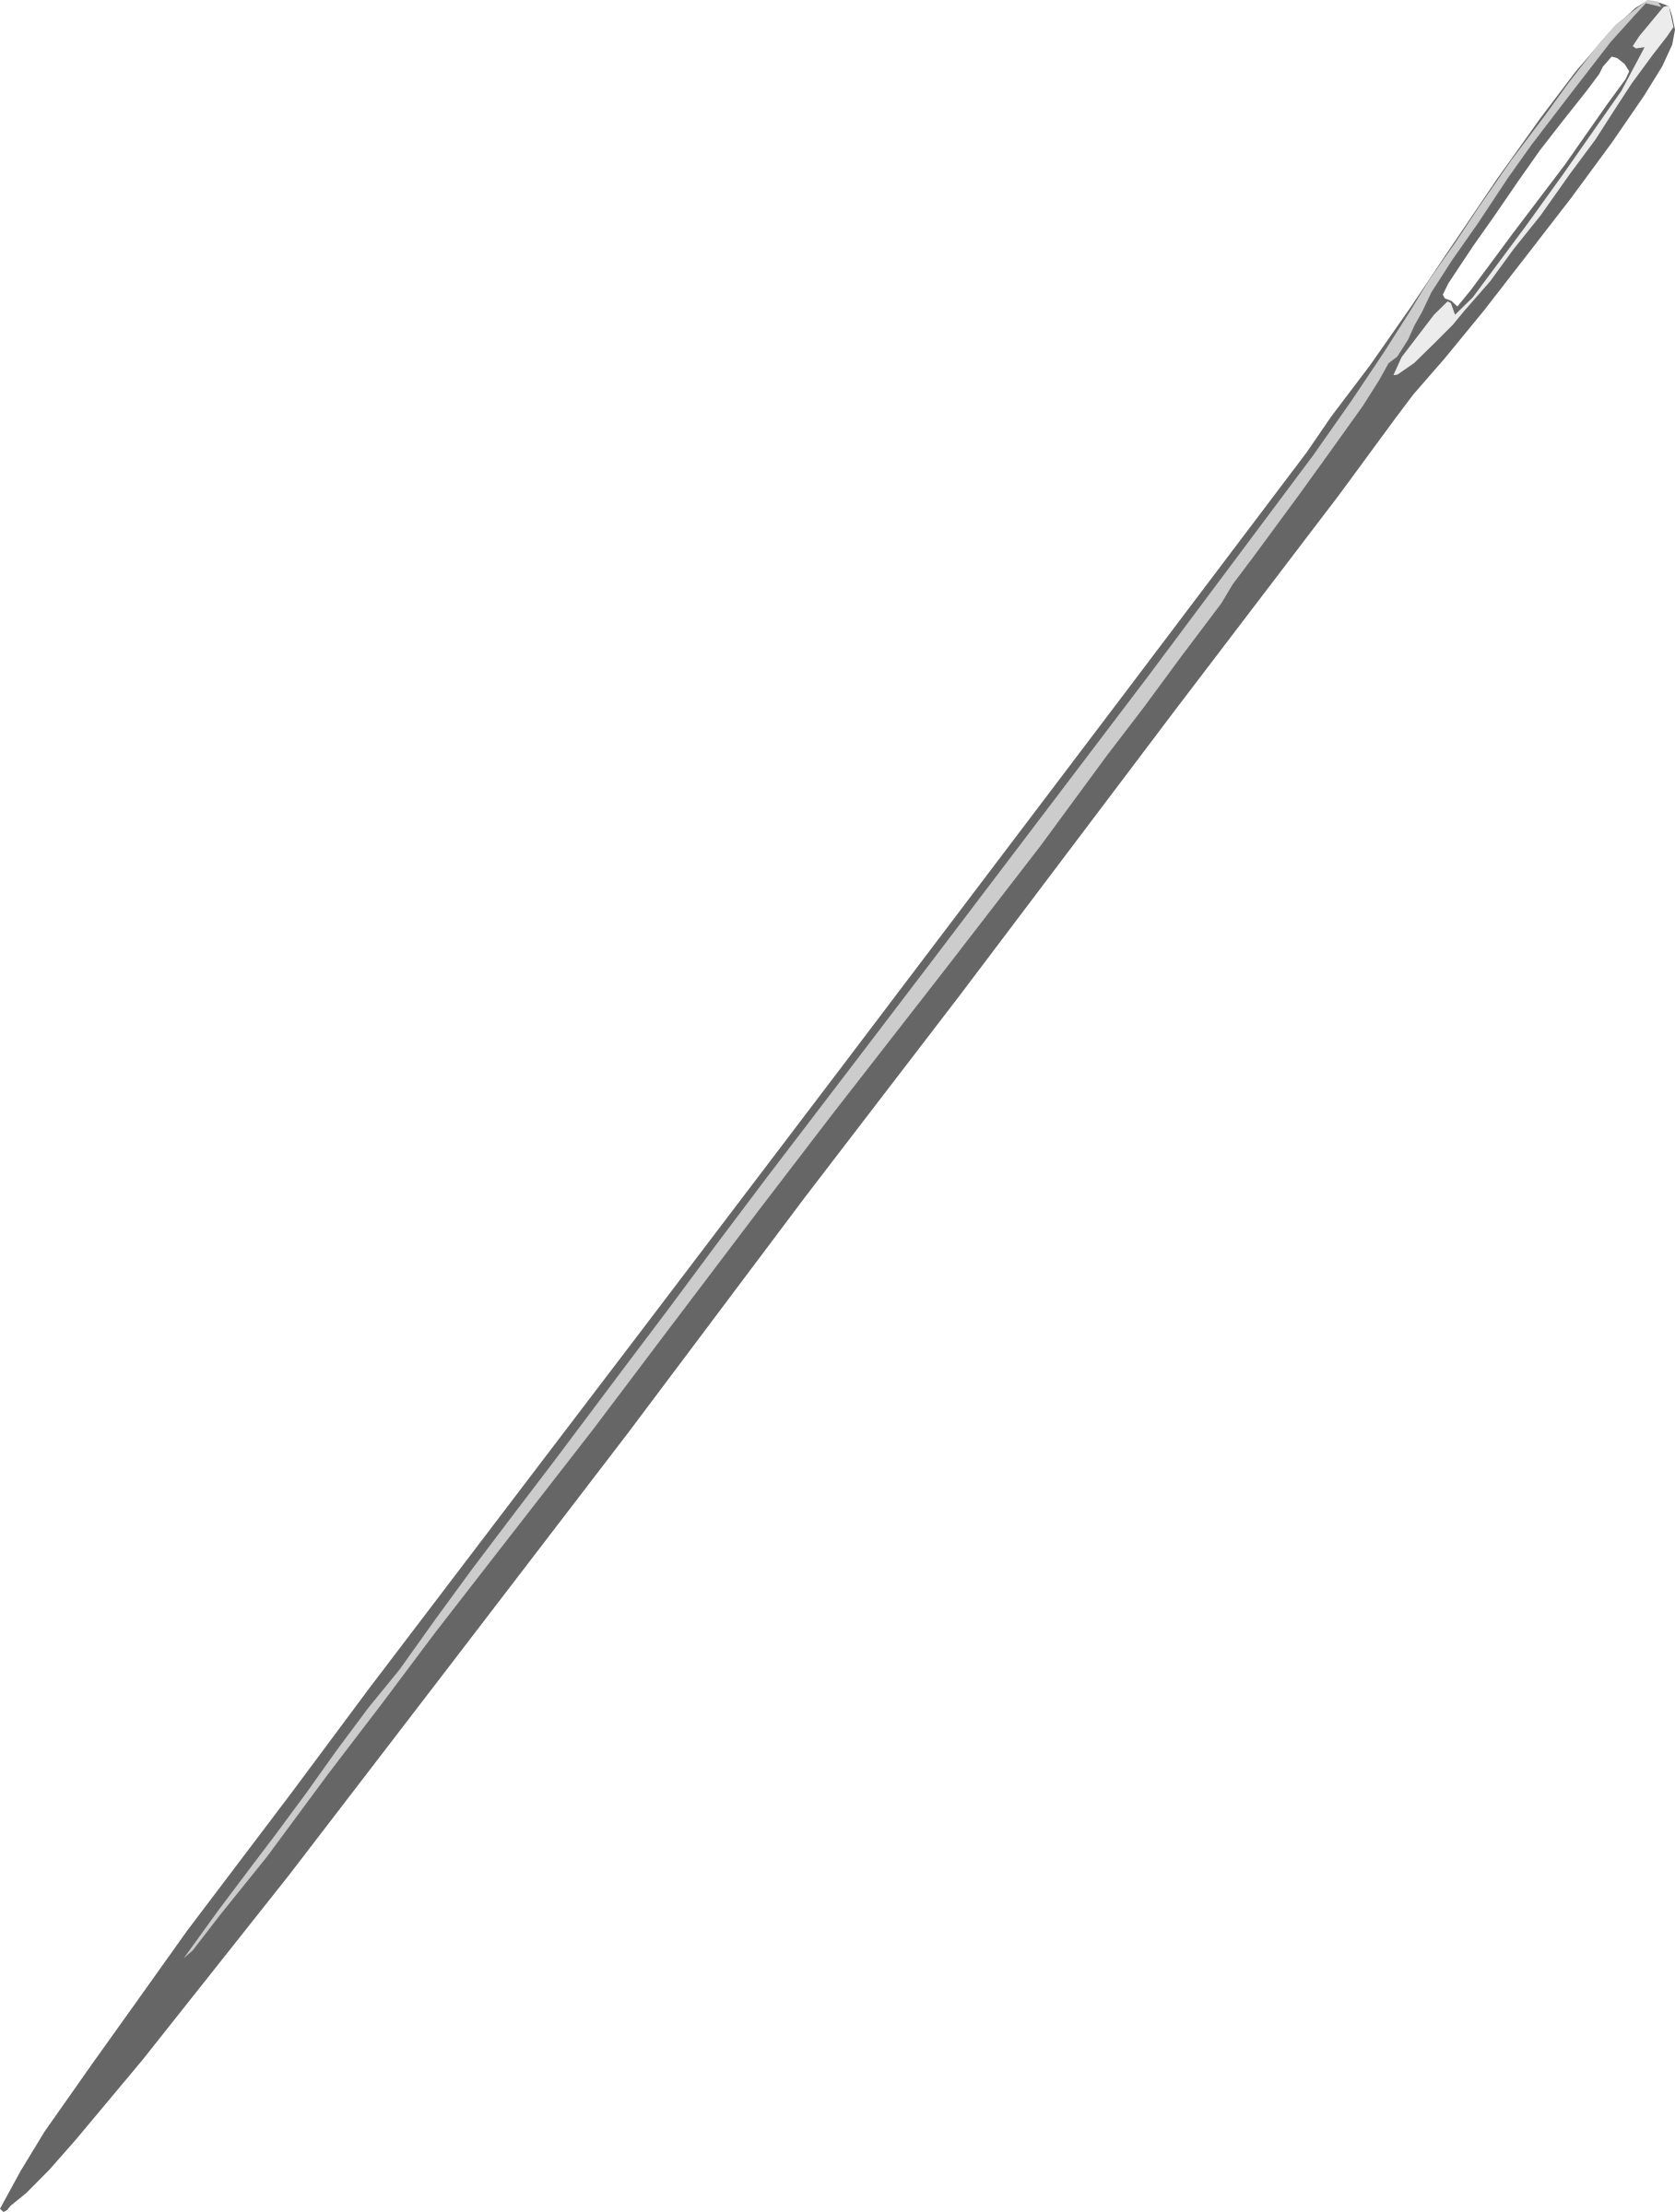 1817x2400 Png Needle Transparent Needle.png Images. Pluspng